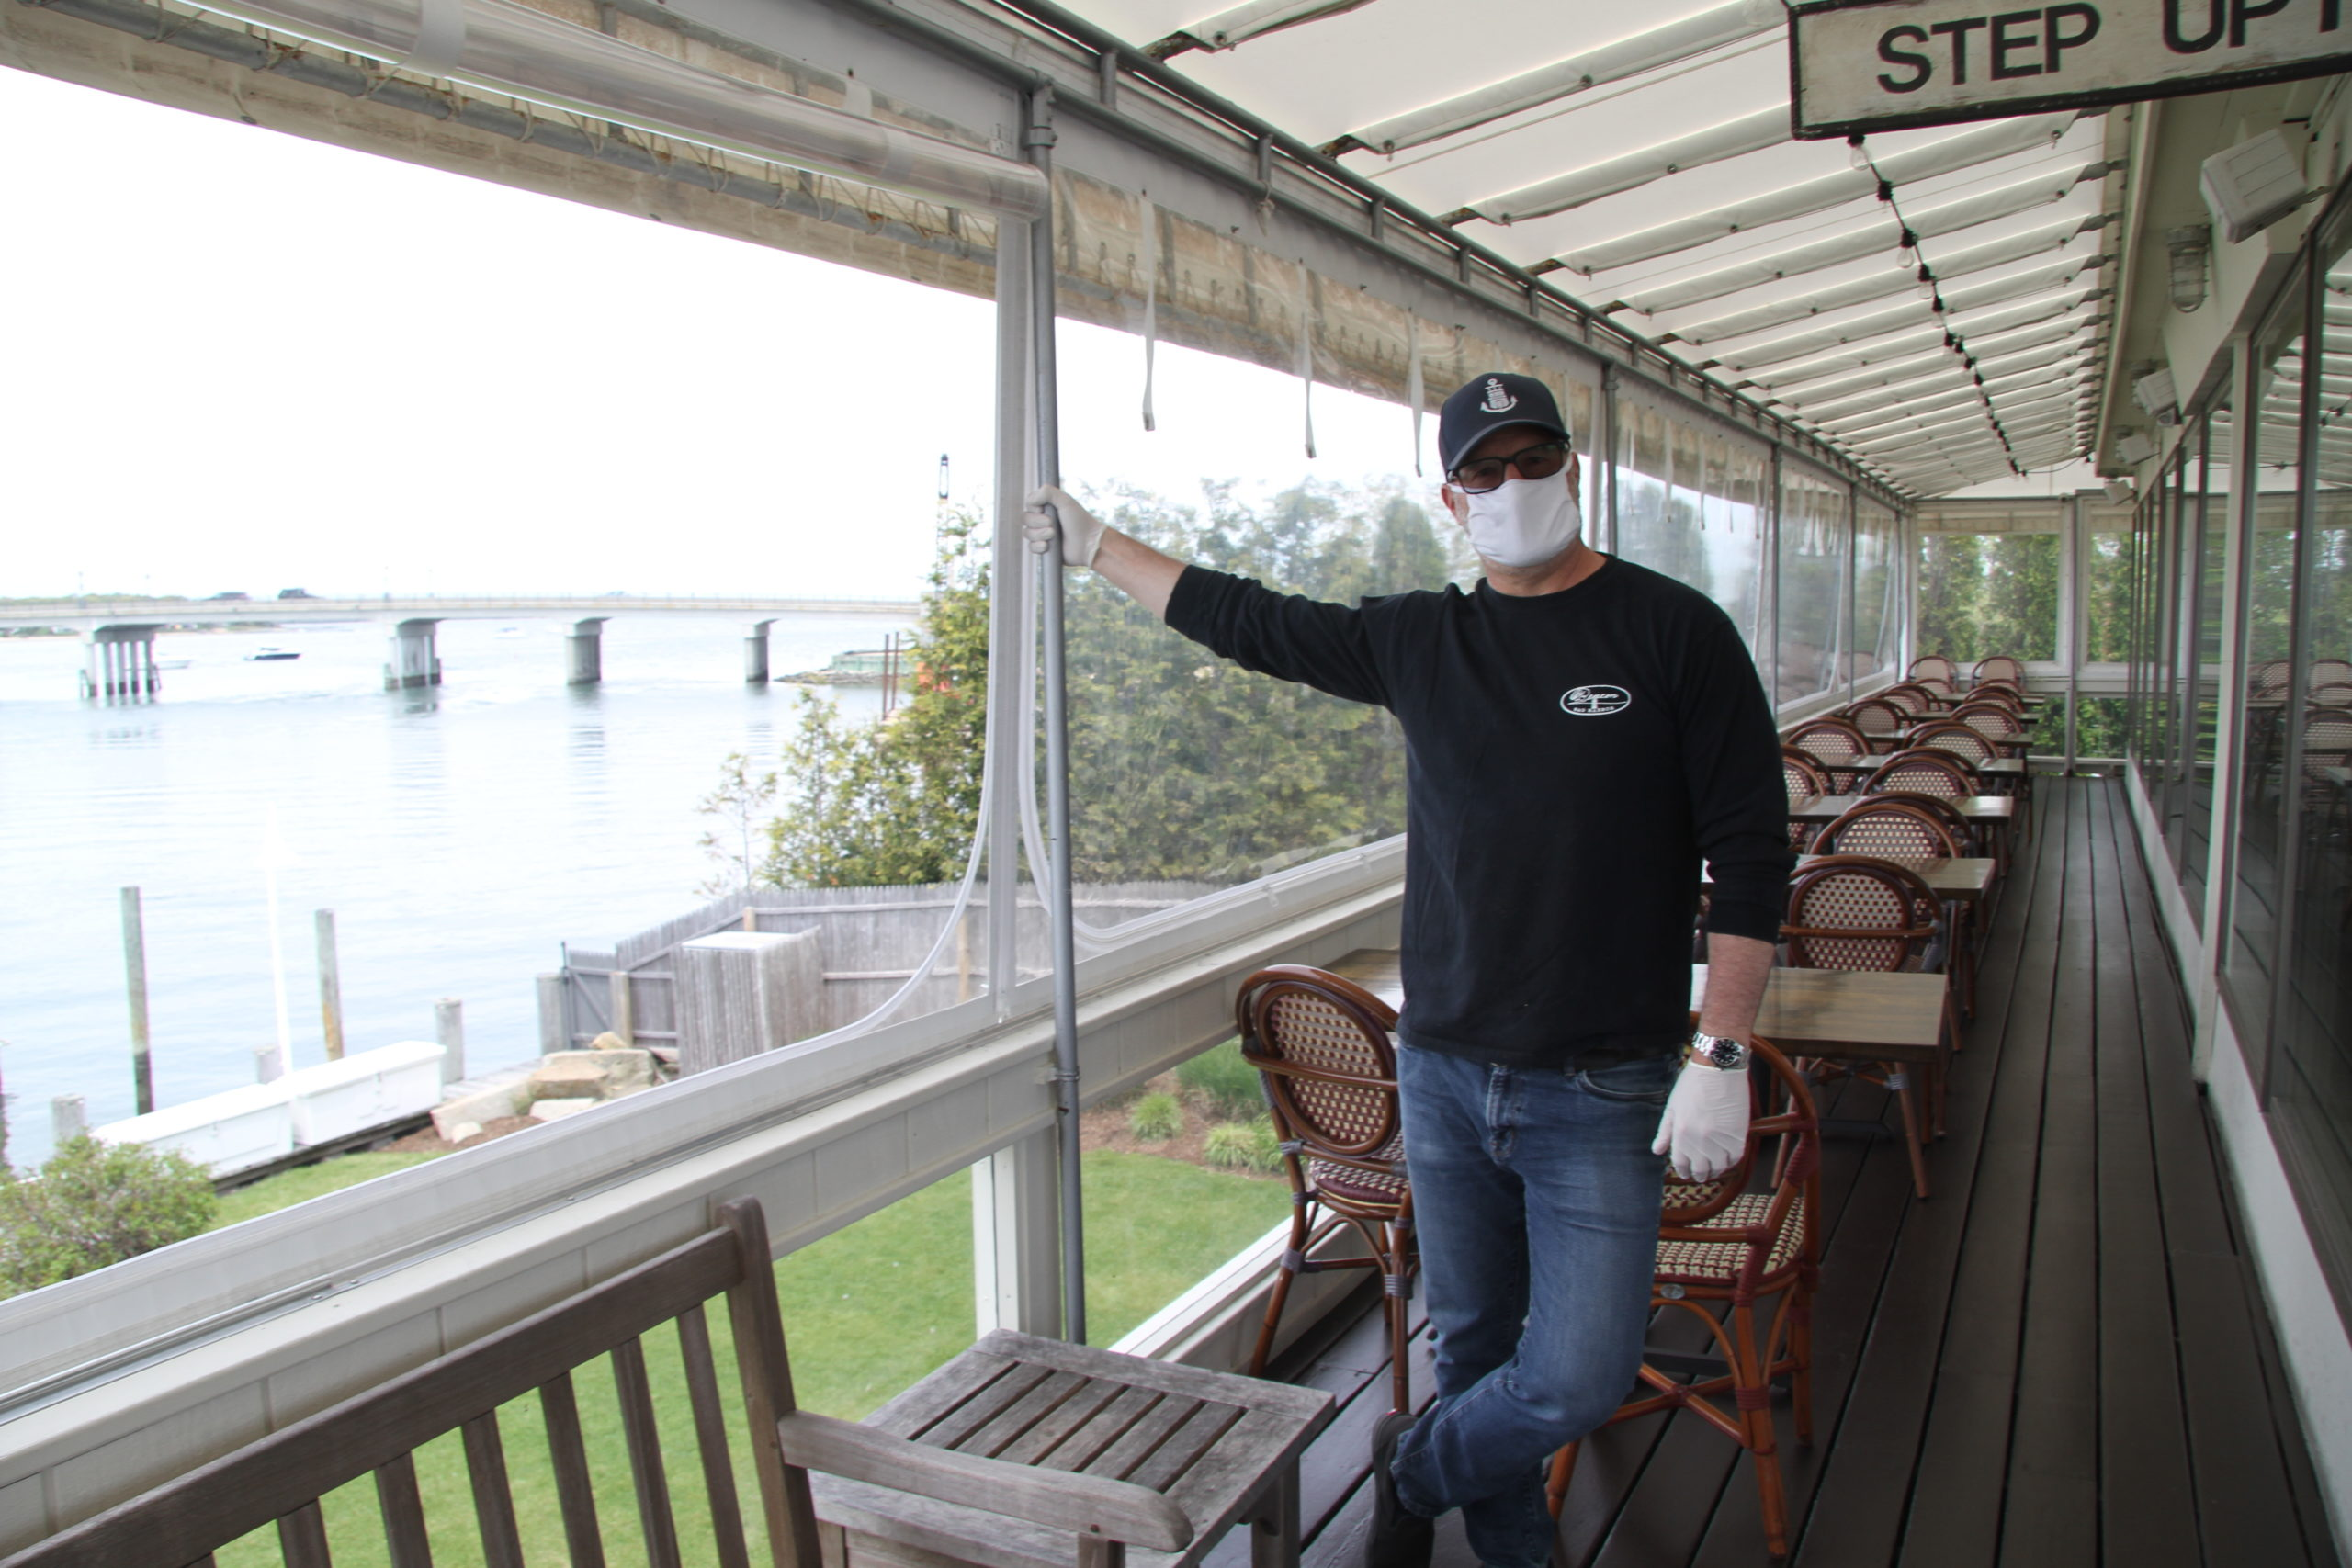 Restaurant owners like David Lowenberg, at The Beacon in Sag Harbor, are wrestling with difficult business model calculations even once the state allows them to open for dine-in service again.